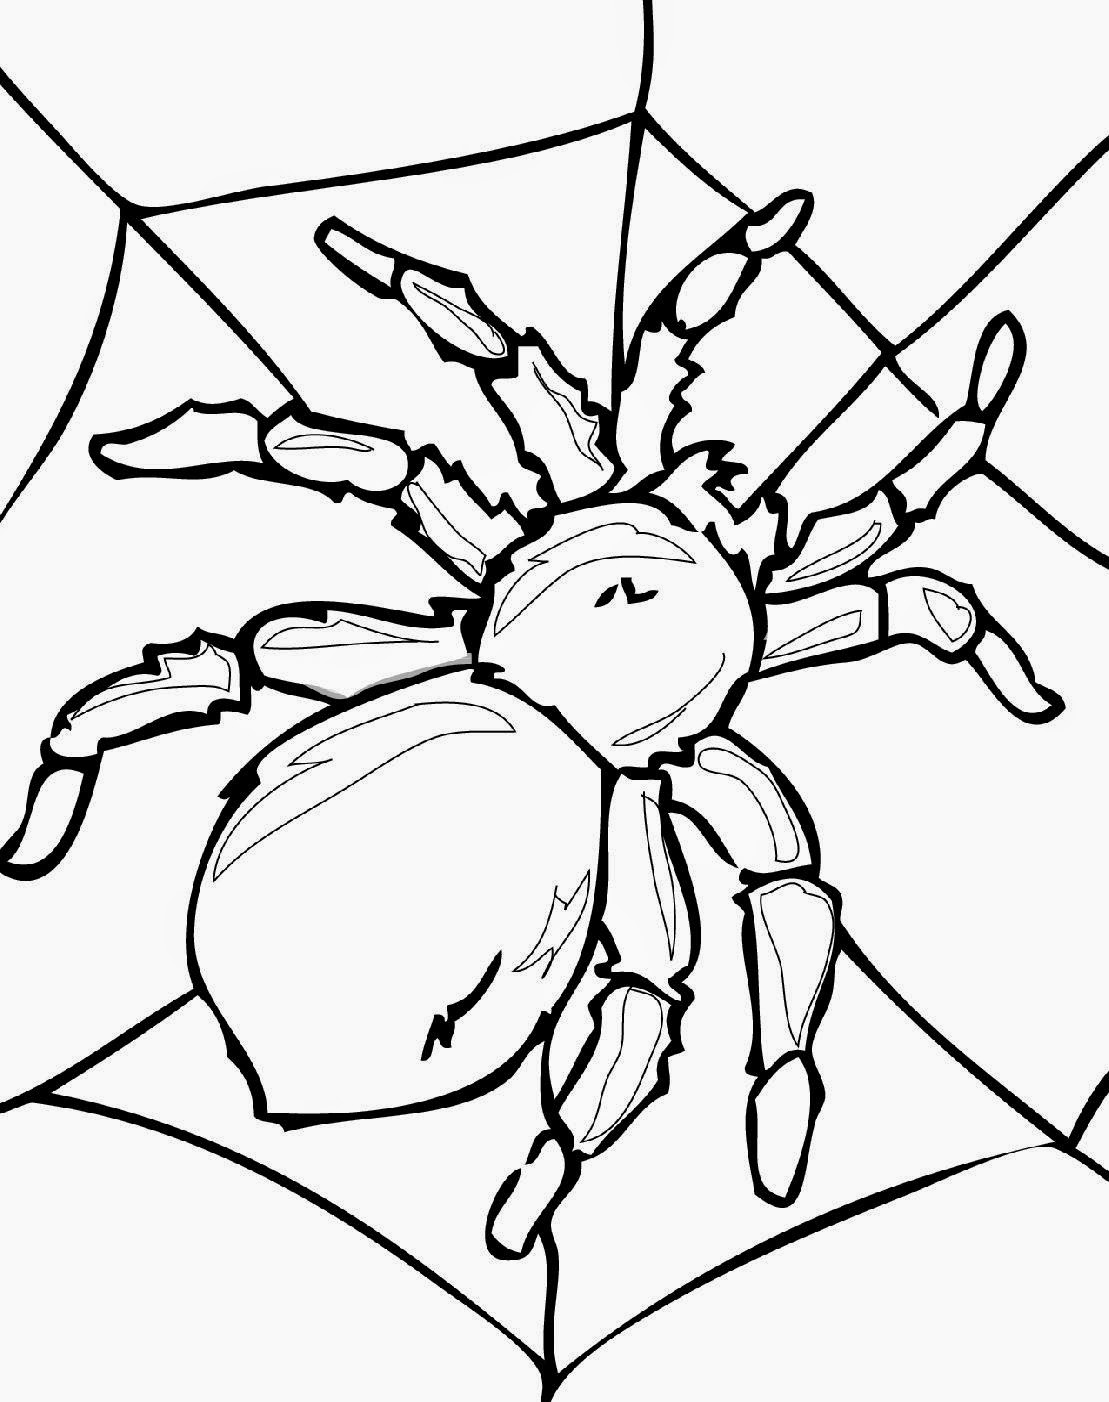 insect coloring pictures insect coloring pages best coloring pages for kids insect coloring pictures